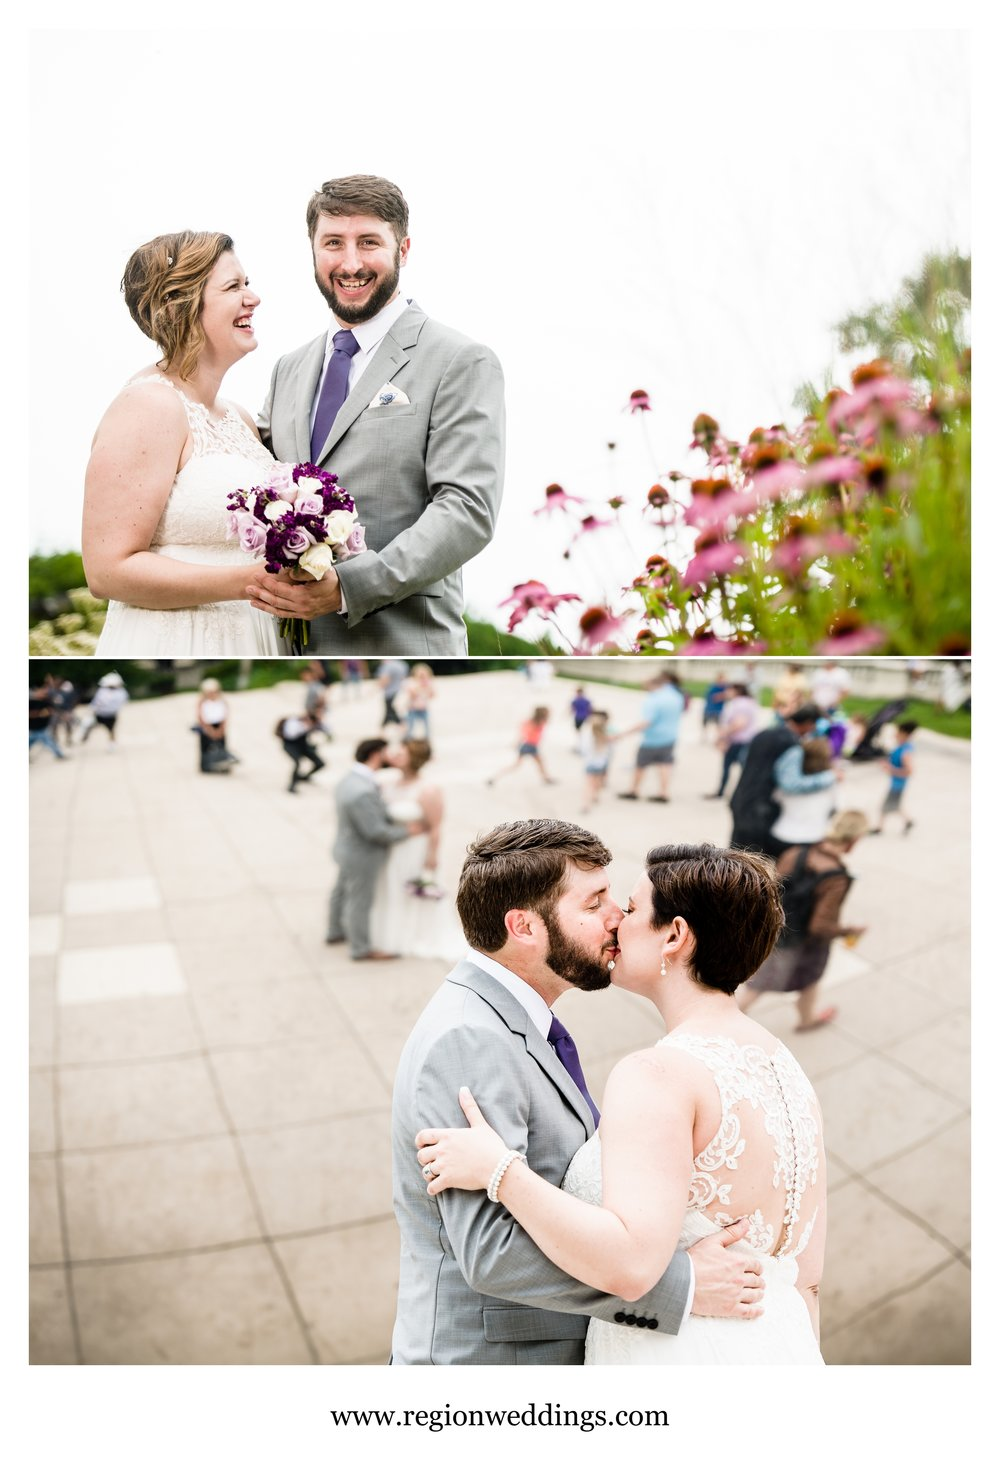 Wedding portraits at Lurie Garden and Cloud Gate in Chicago.